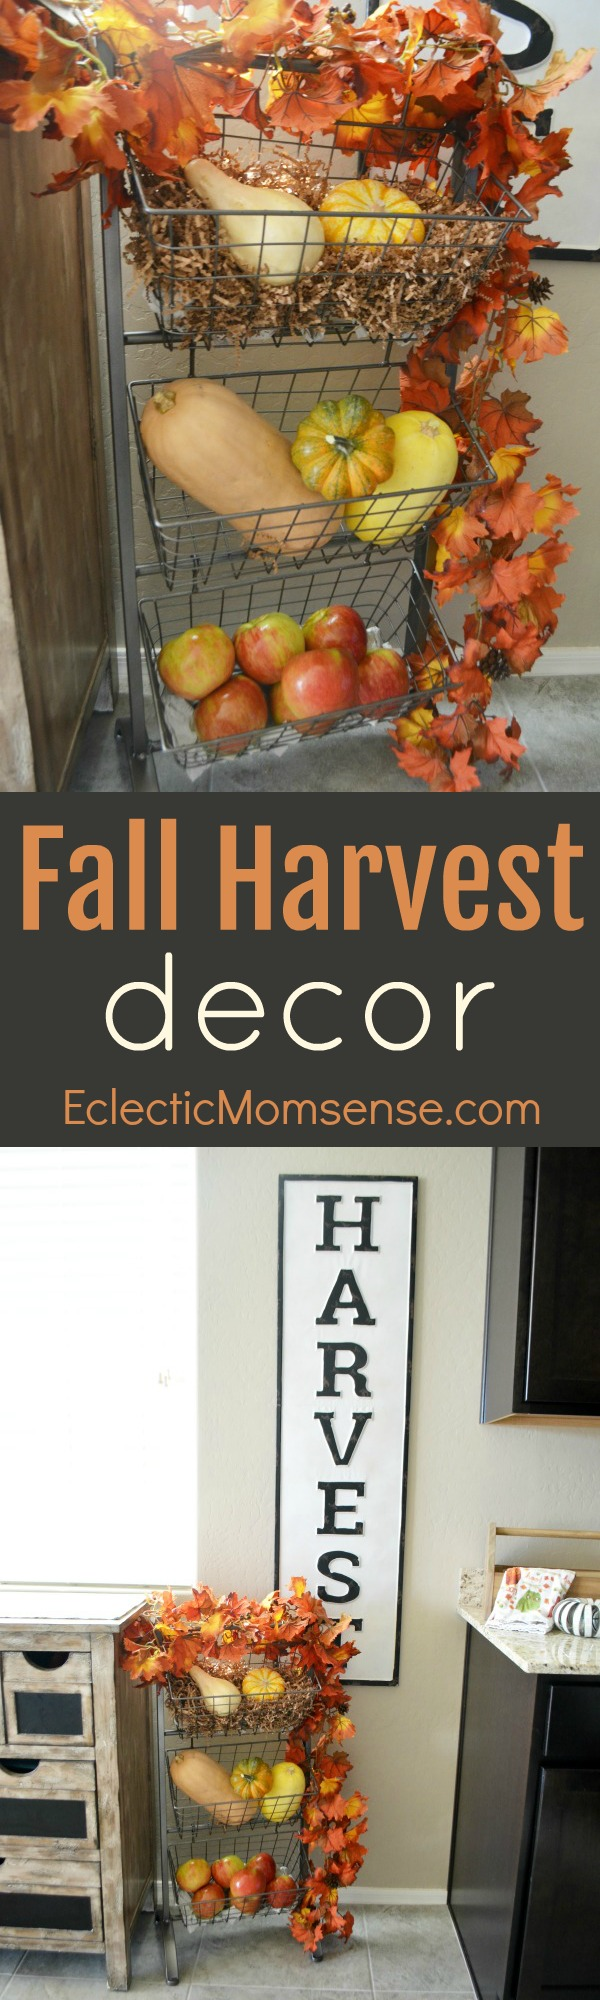 Fall Harvest Decor | Store beautifully with a tiered fruit and veggie basket and fall colors.